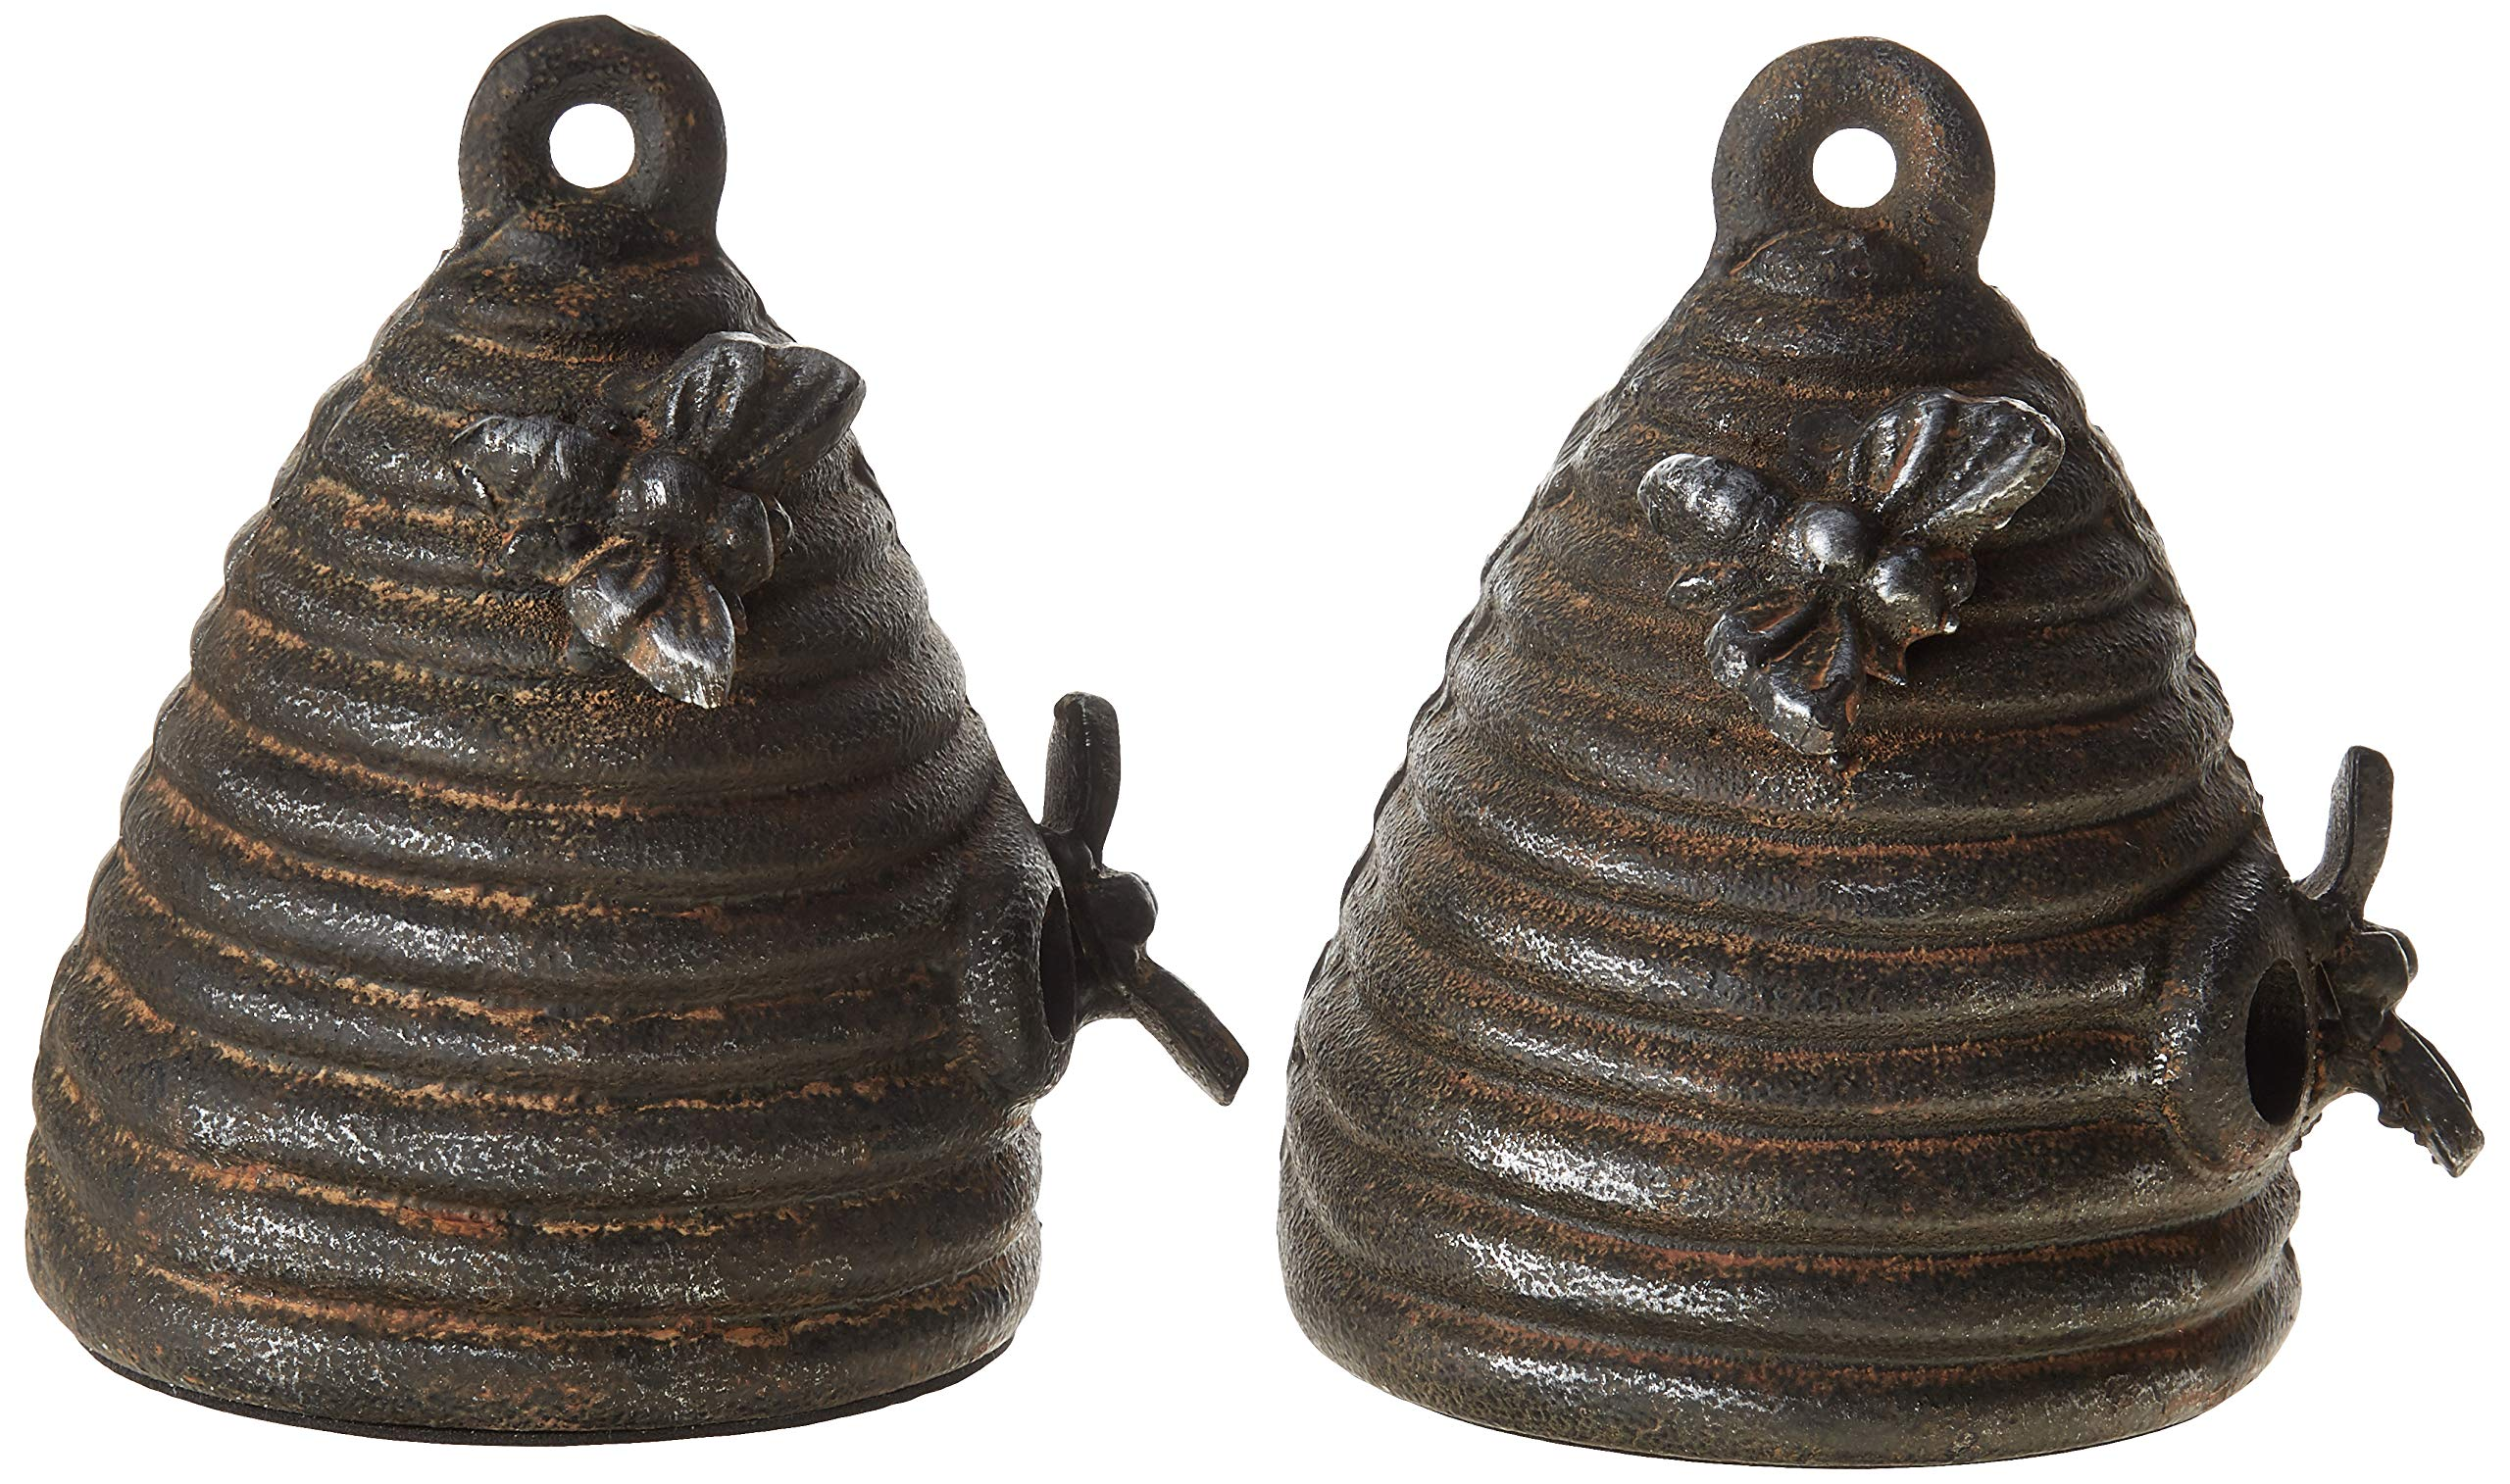 Creative Co-op Cast Iron Beehive (Set of 2 Pieces) Bookends, Black by Creative Co-op